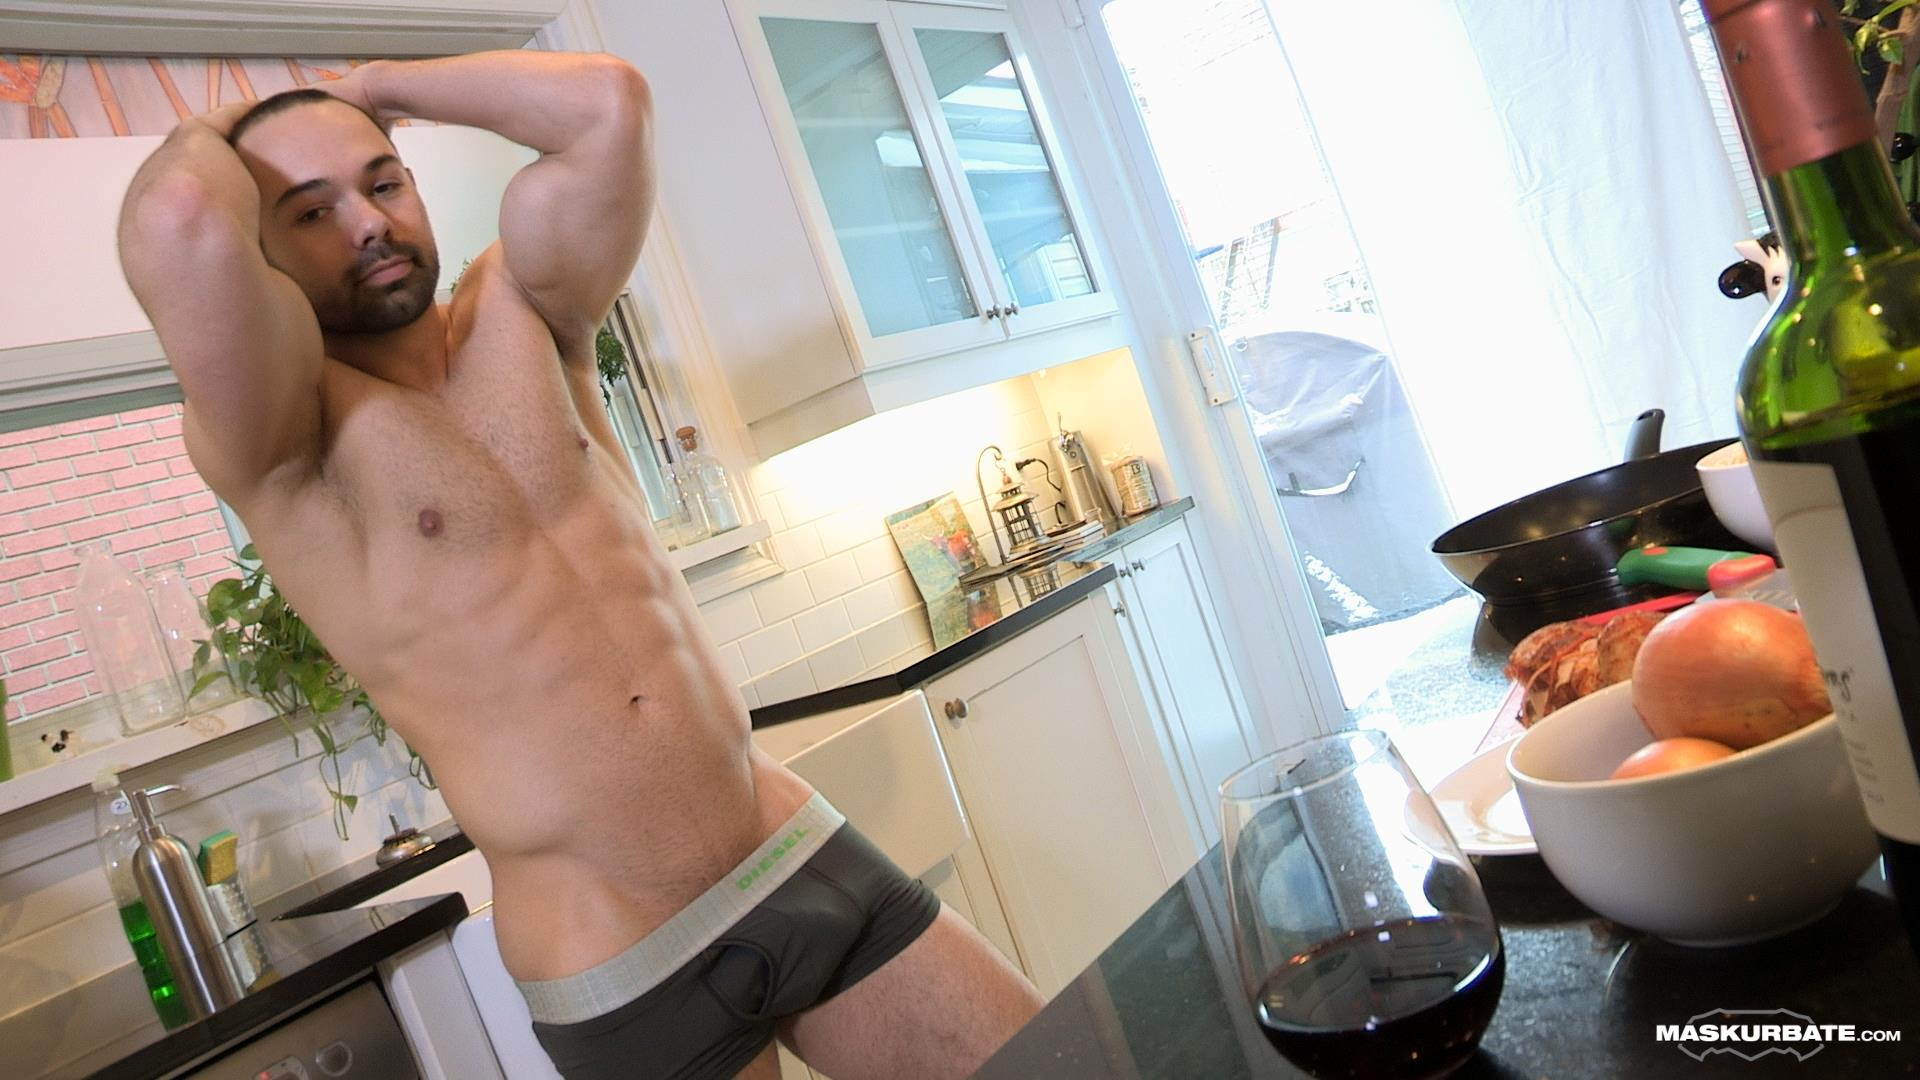 Maskurbate Muscle Hunk With A Big Uncut Cock Jerking Off Amateur Gay Porn 03 The Naked Chef Jerks His Big Uncut Cock In The Kitchen